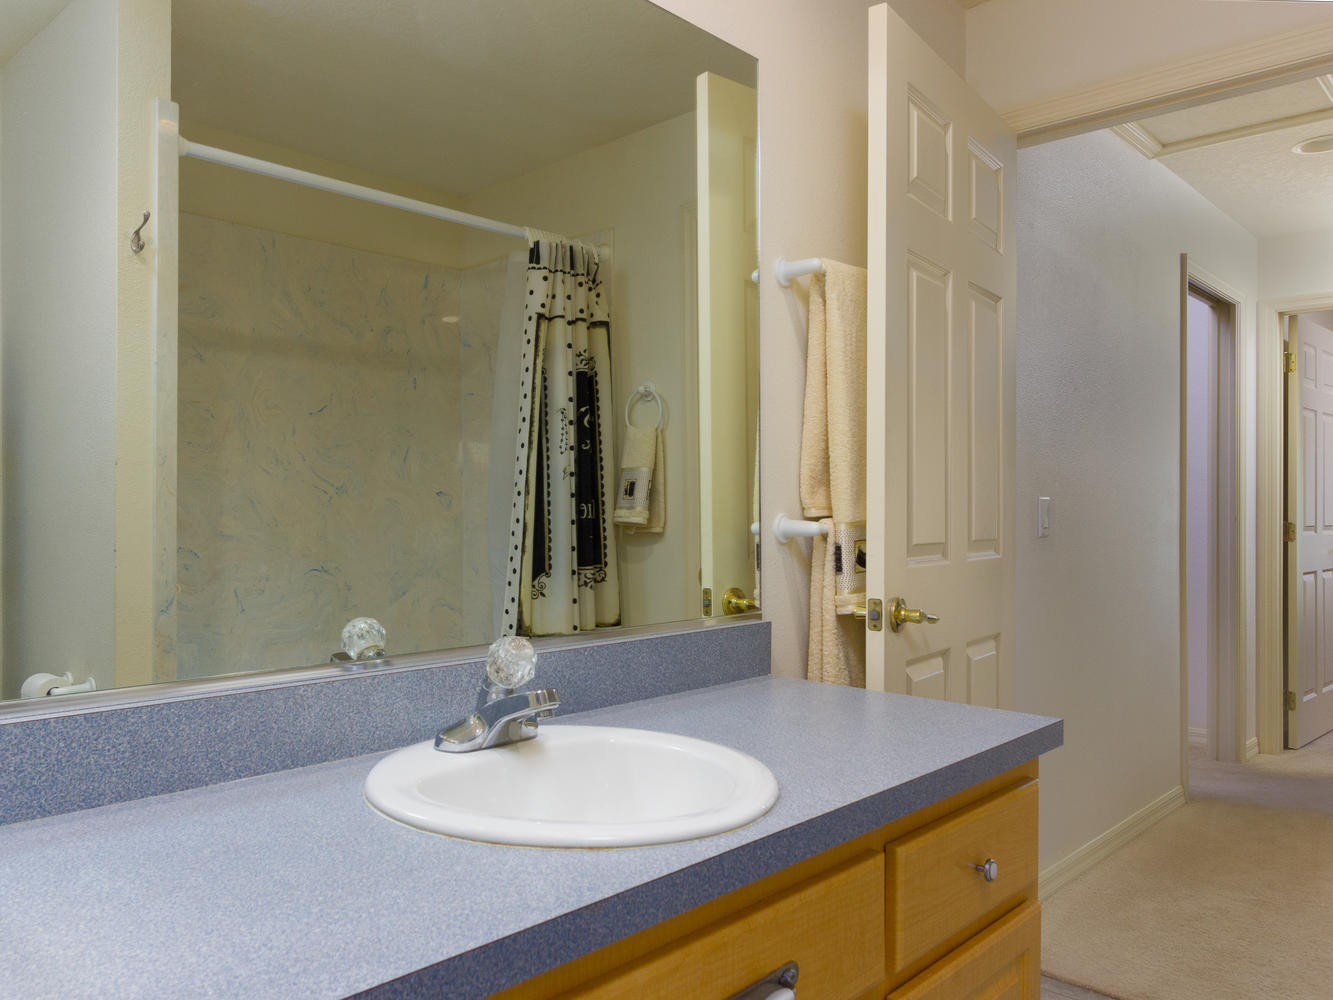 15660_SE_89th_Ct_Summerfield-large-018-11-Hall_Bathroom-1334x1000-72dpi